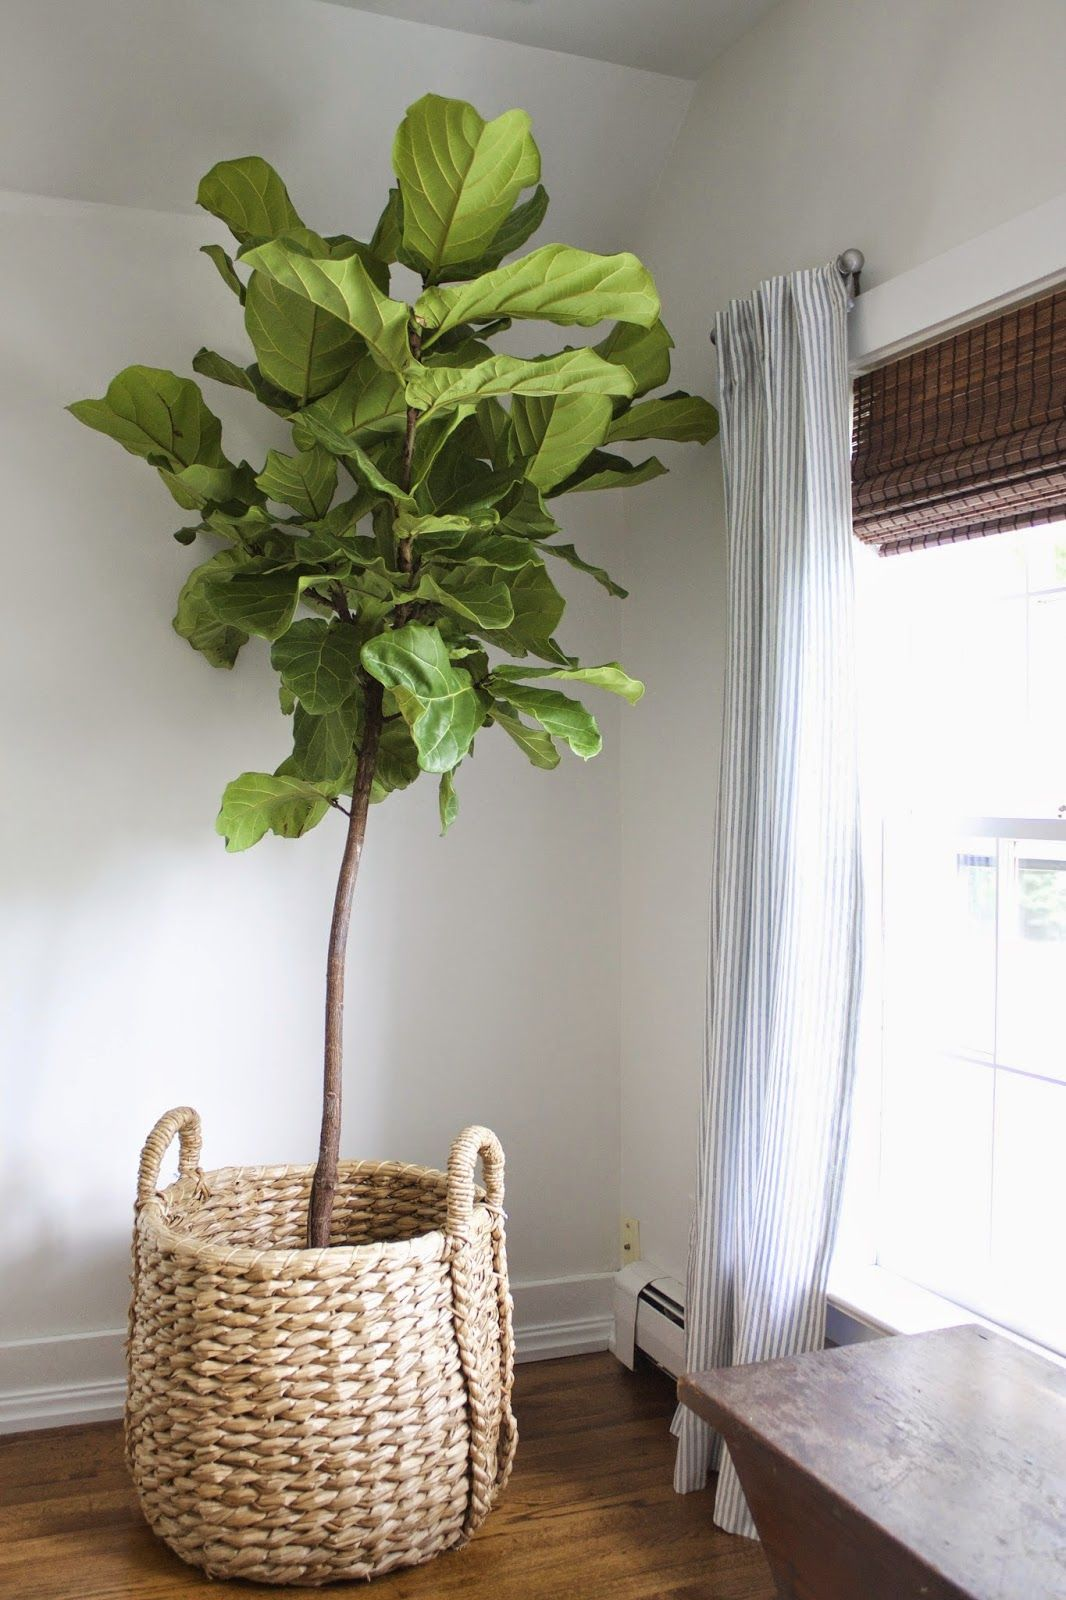 fiddle leaf fig tree in basket - need a decent sized plant like this ...